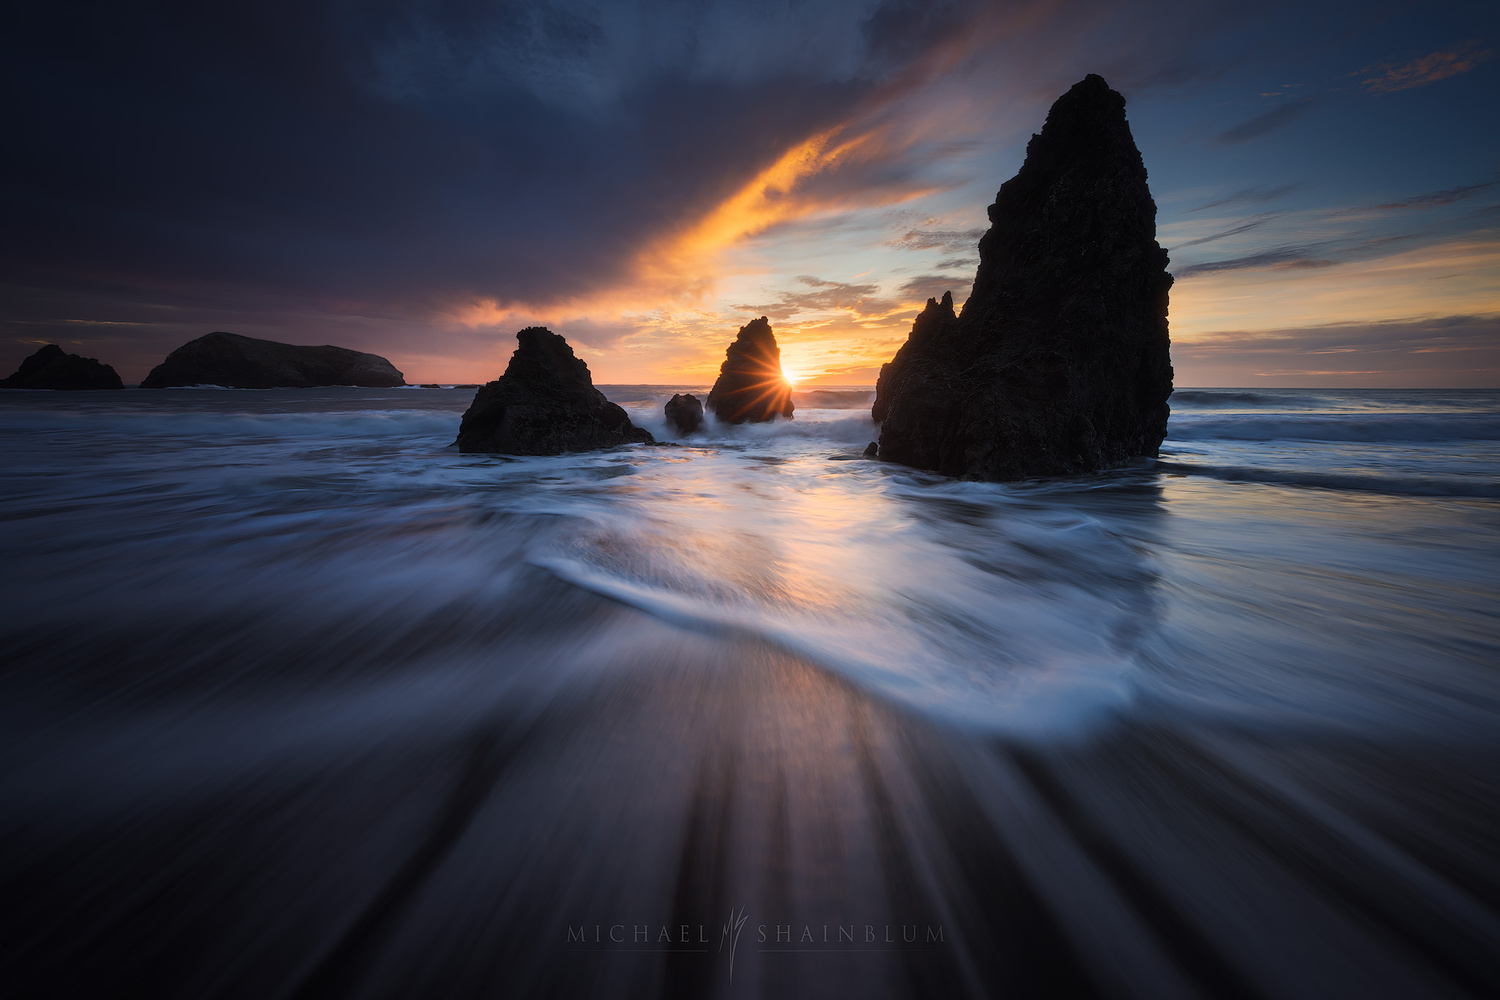 Rodeo Flow by Michael Shainblum